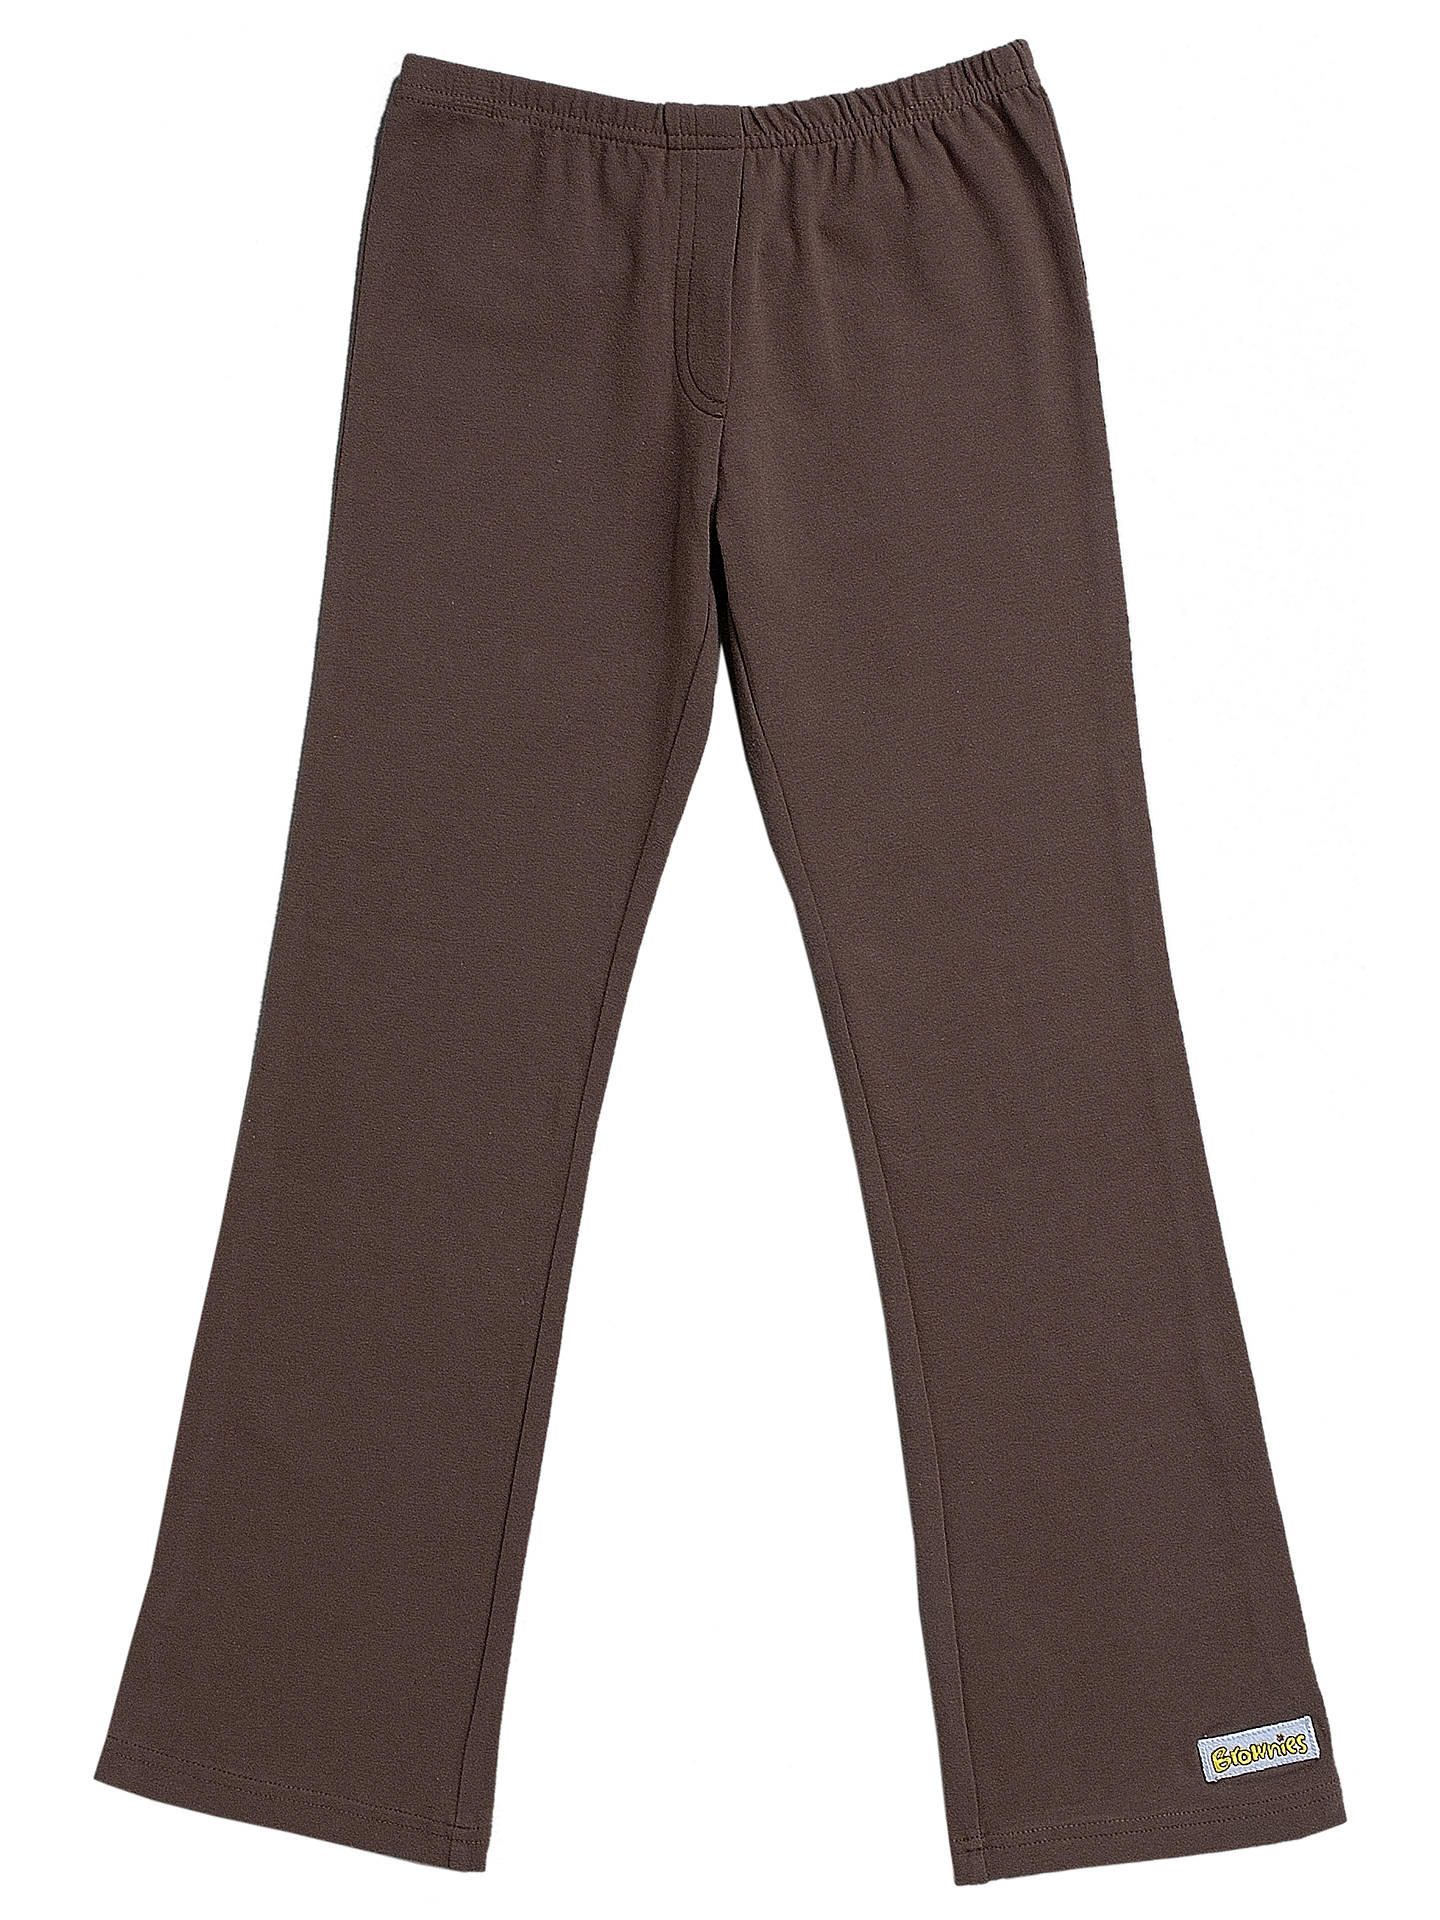 BRAND NEW Brownie Bottoms BROWNIES TROUSERS